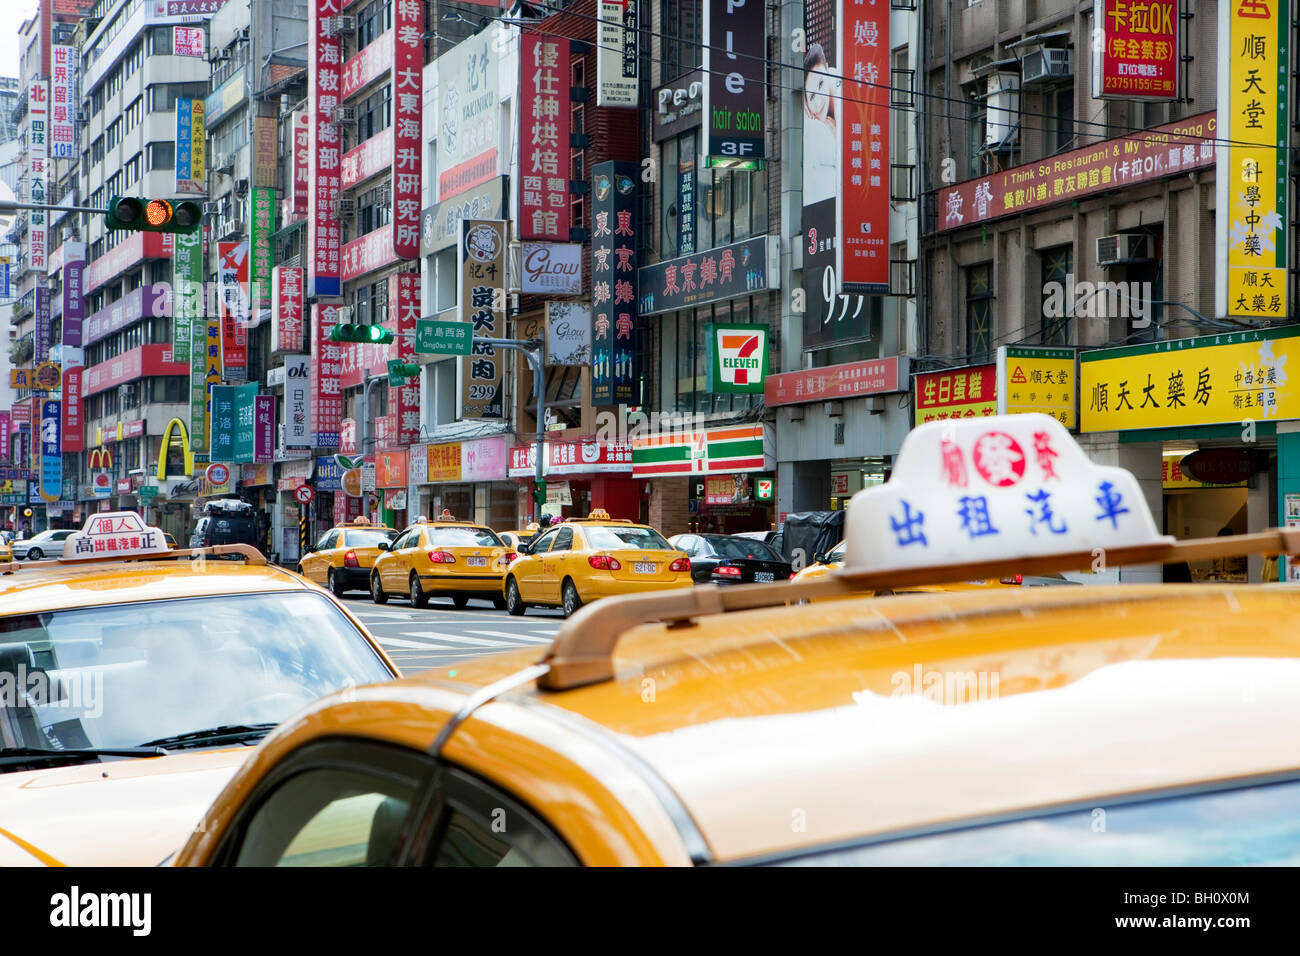 Street setting, taxis and neon lights at main station district, Taipei, Taiwan, Asia - Stock Image